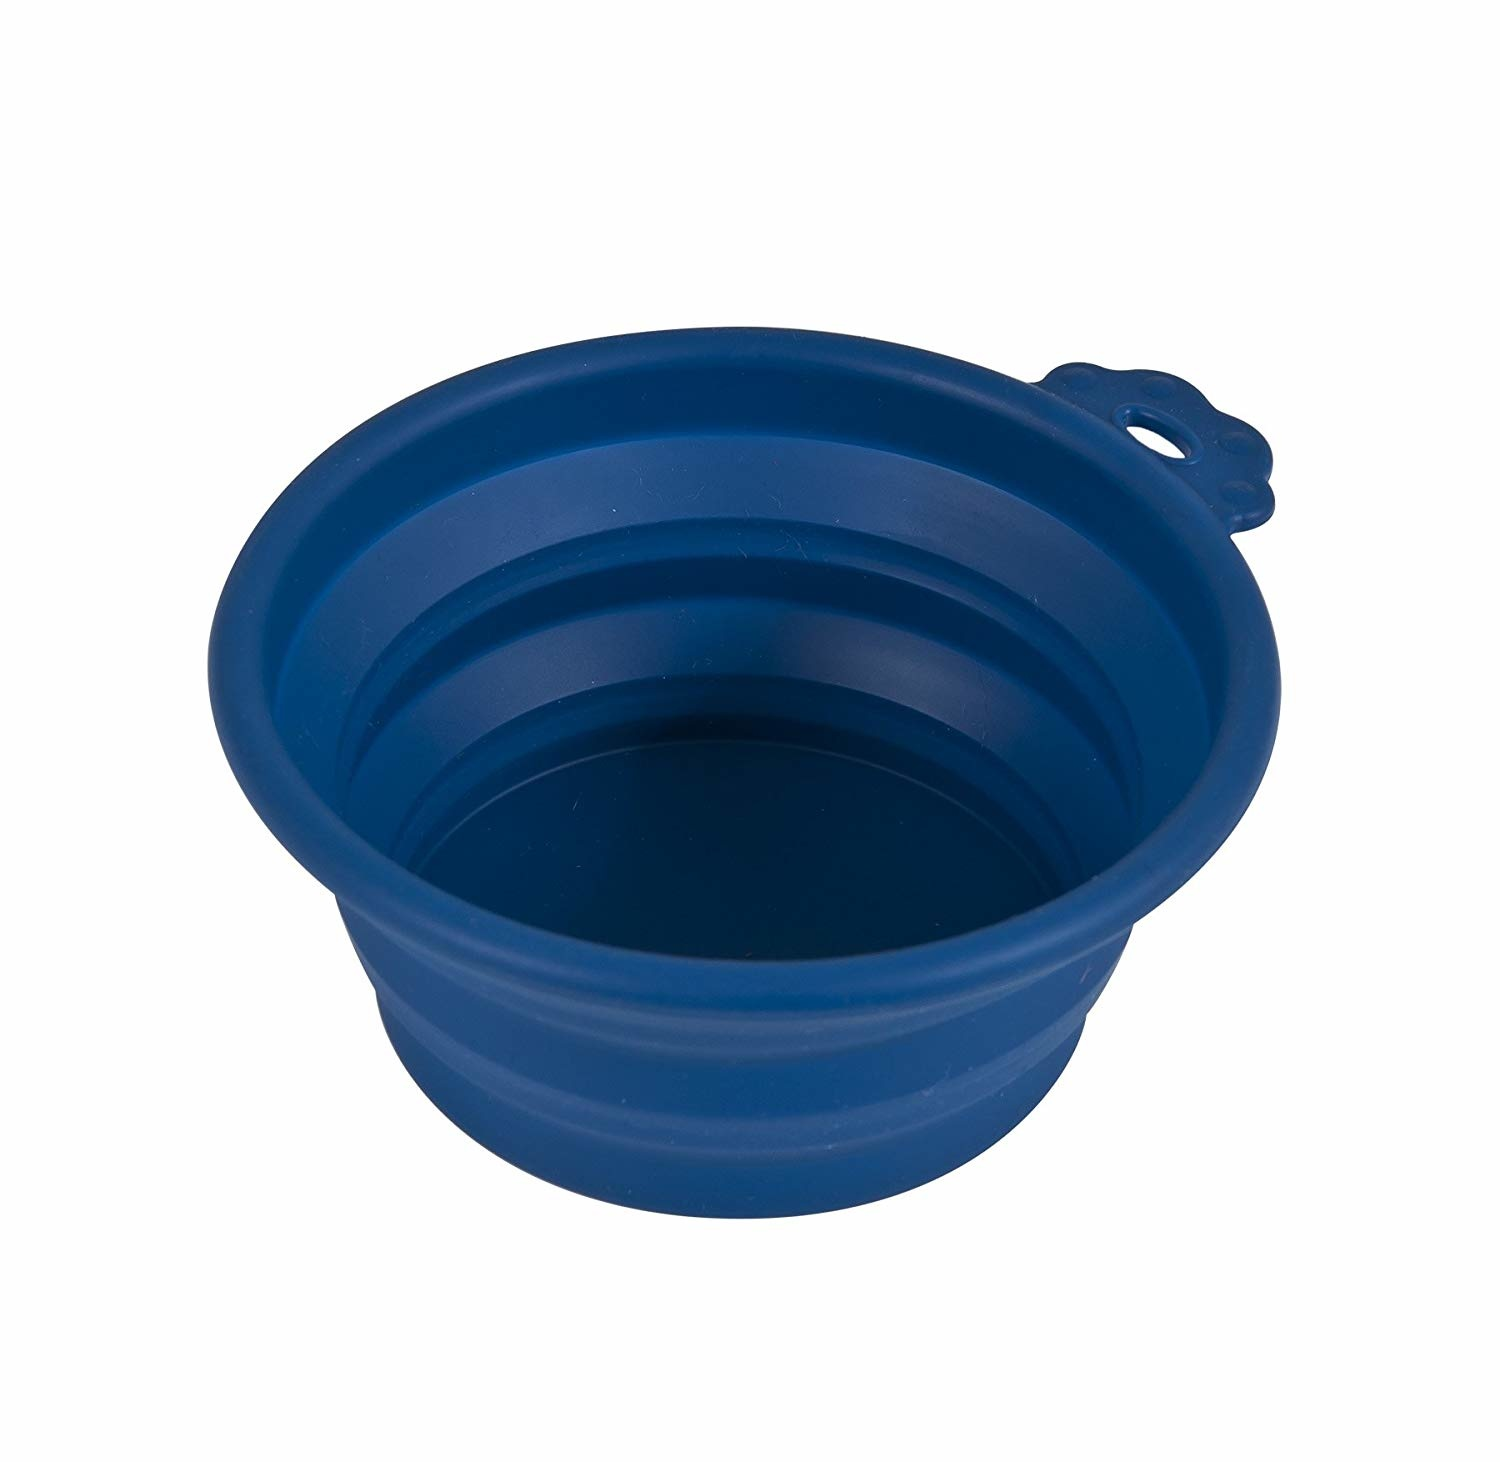 Petmate Petmate Silicone Travel Bowl Blue 1.5 cup